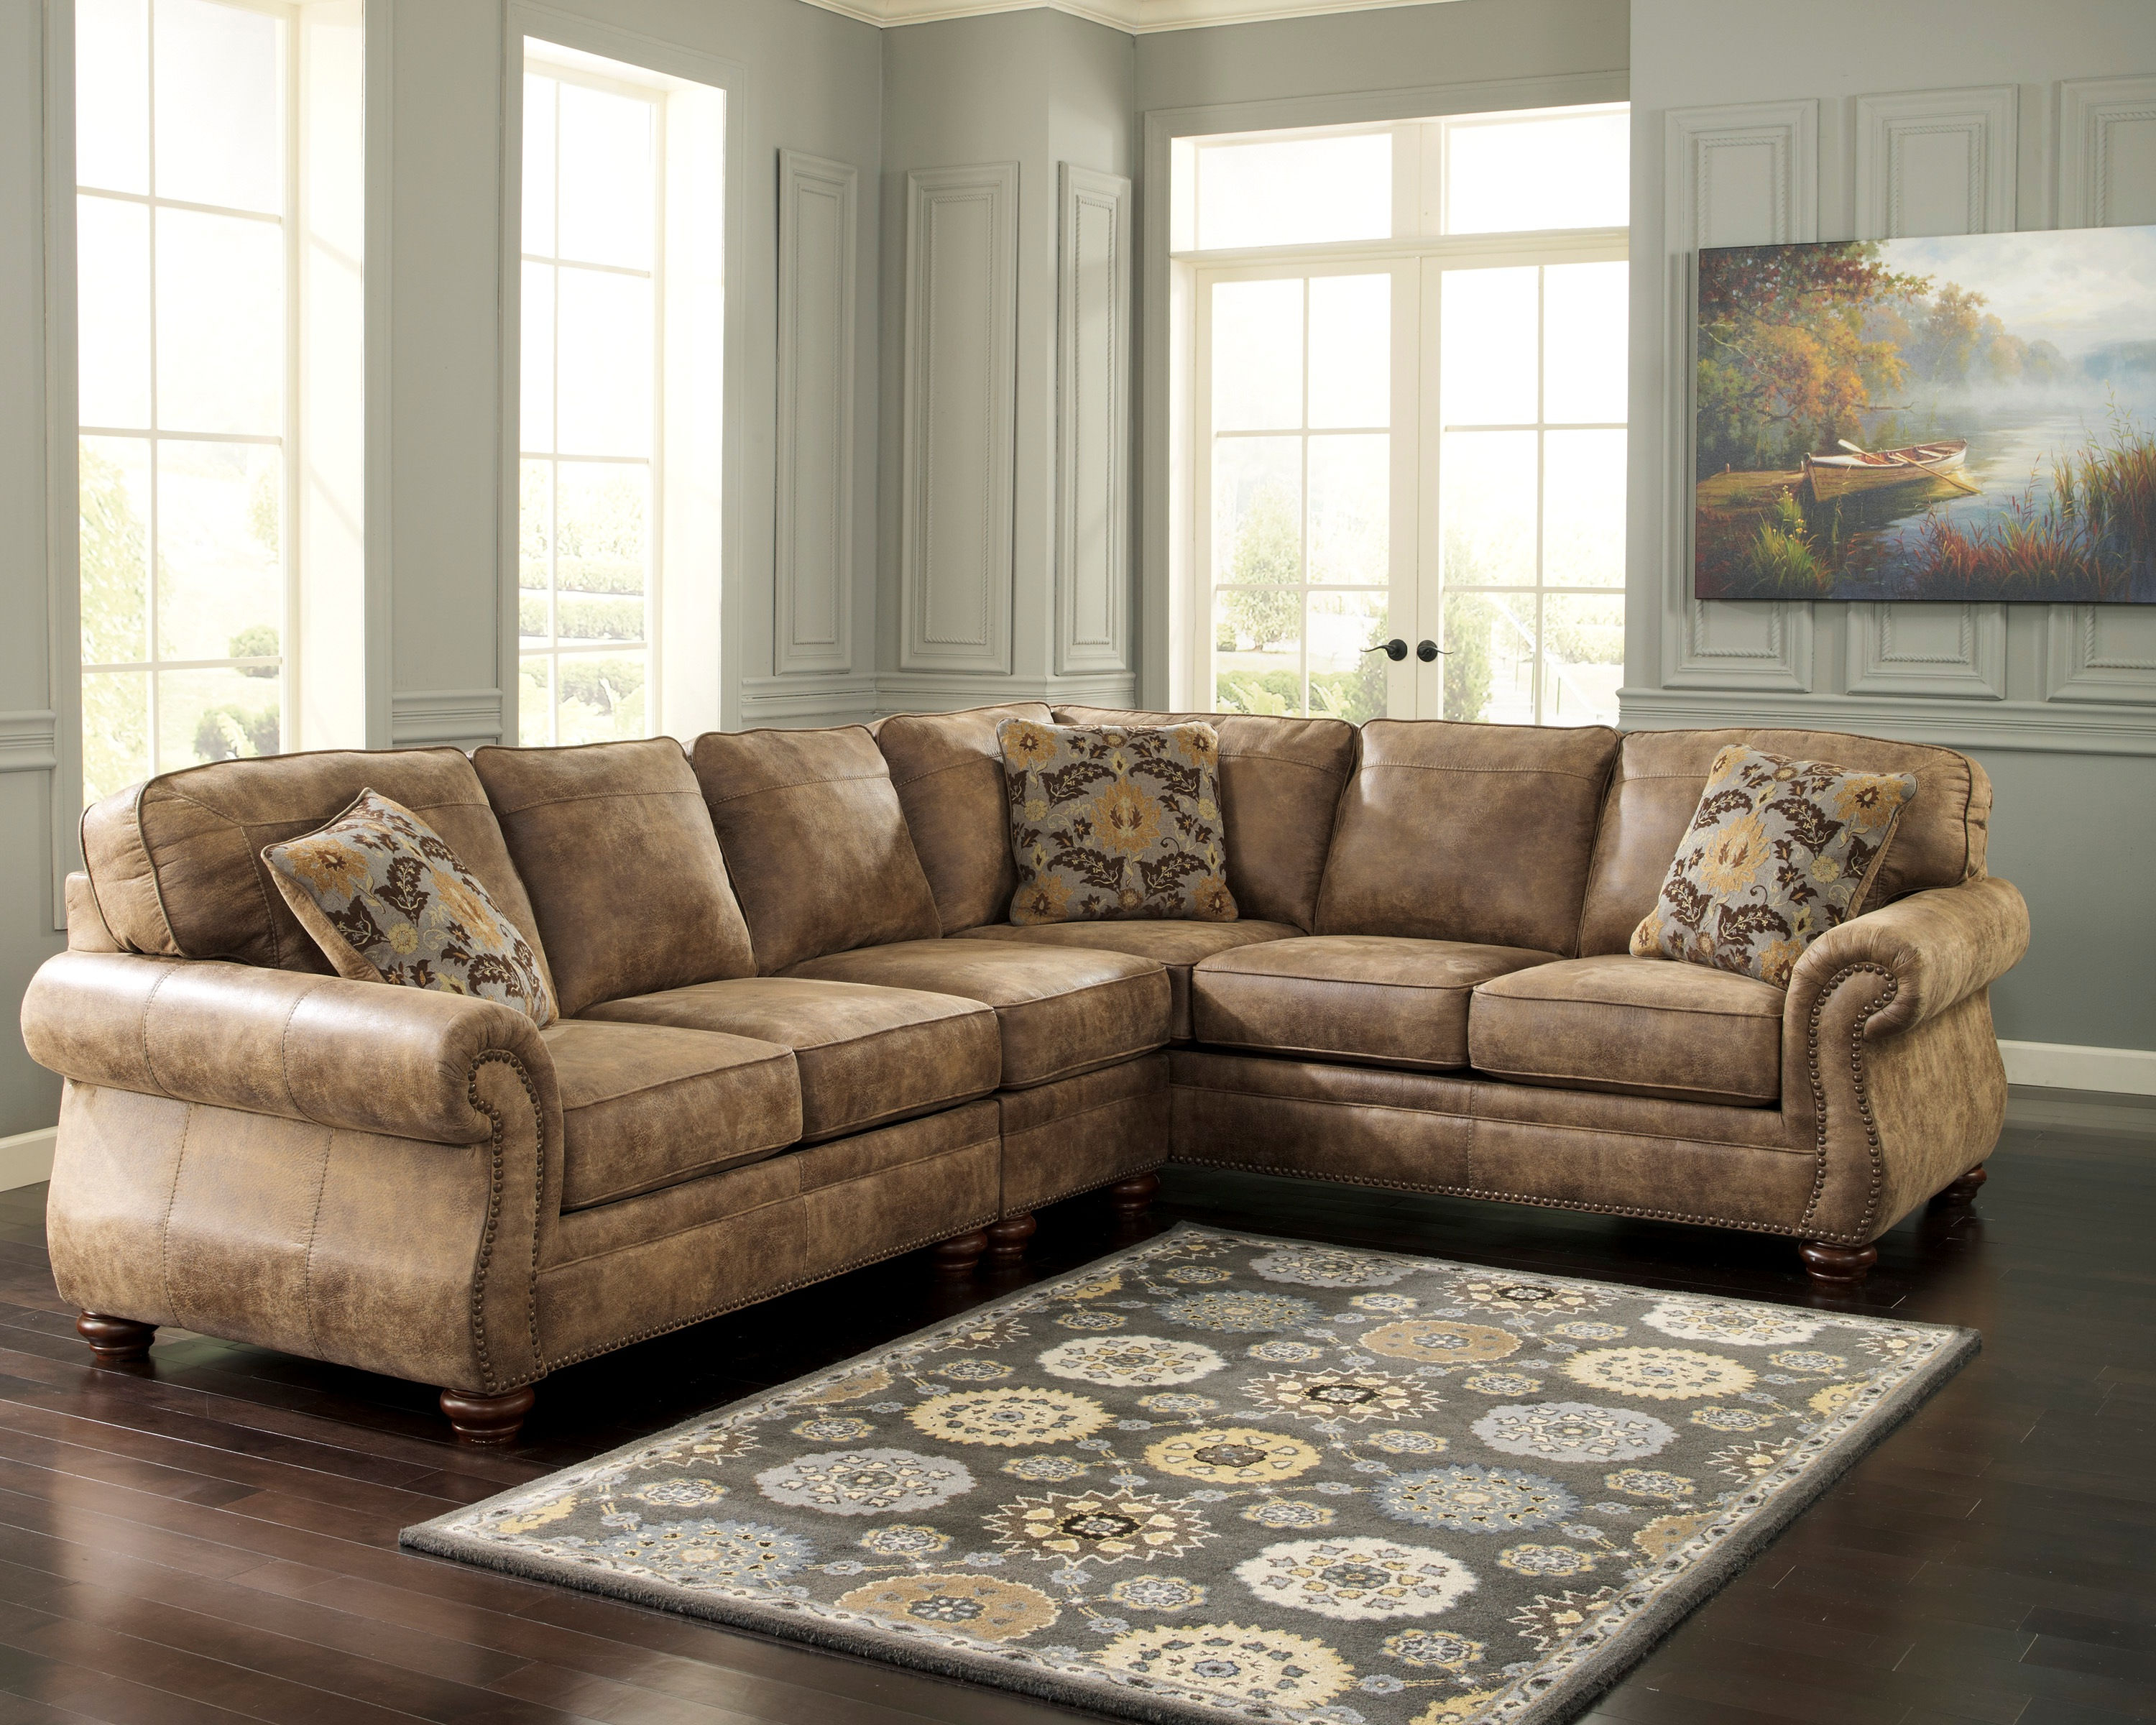 Turdur 2 Piece Sectionals With Laf Loveseat With Regard To 2019 Laf Sofa Raf Loveseat (View 17 of 20)